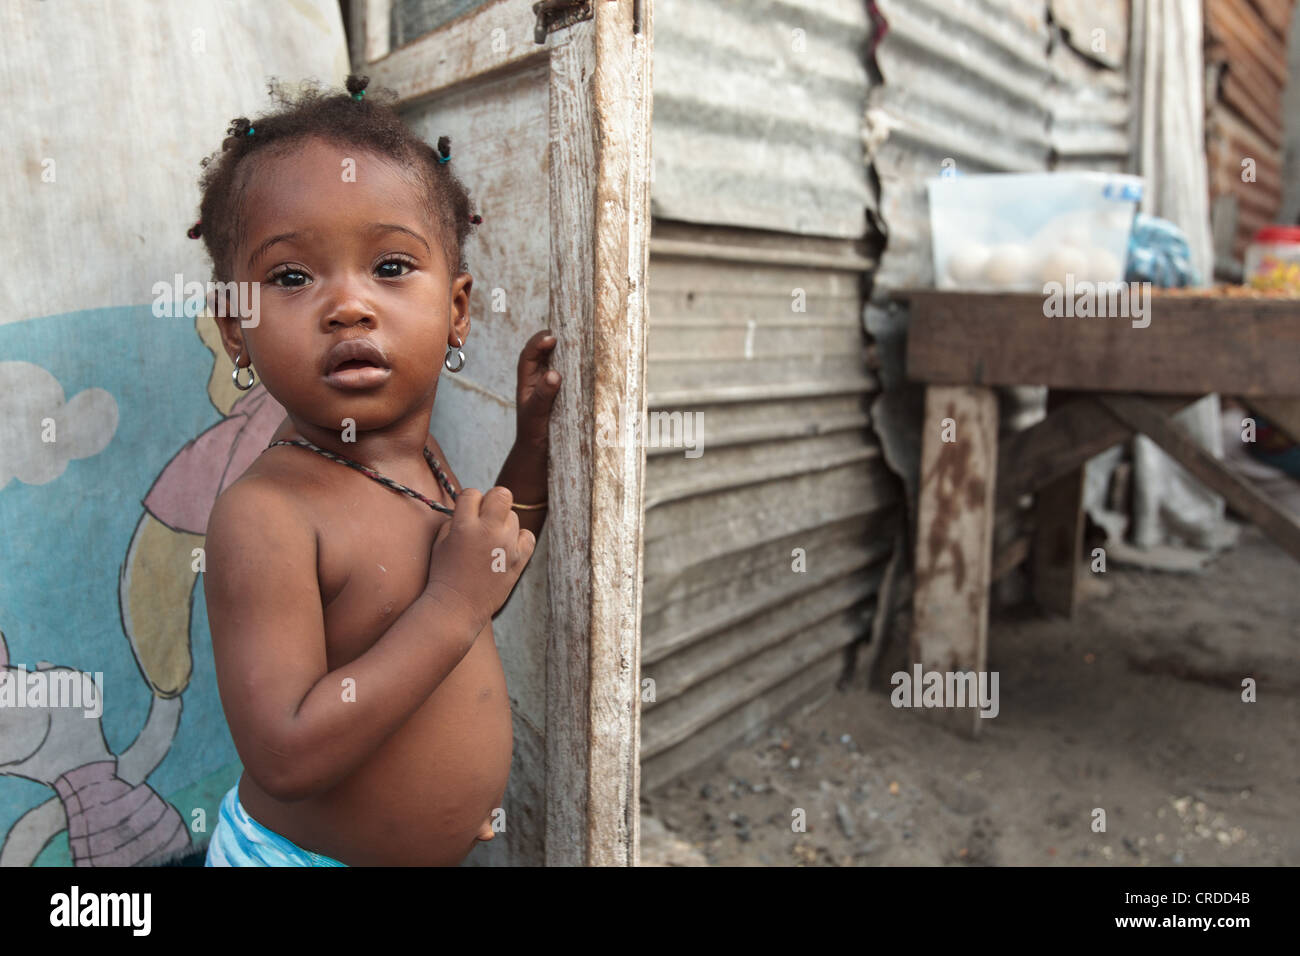 A young girl stands in the doorway of her home in the West Point slum in Monrovia, Montserrado county, Liberia - Stock Image